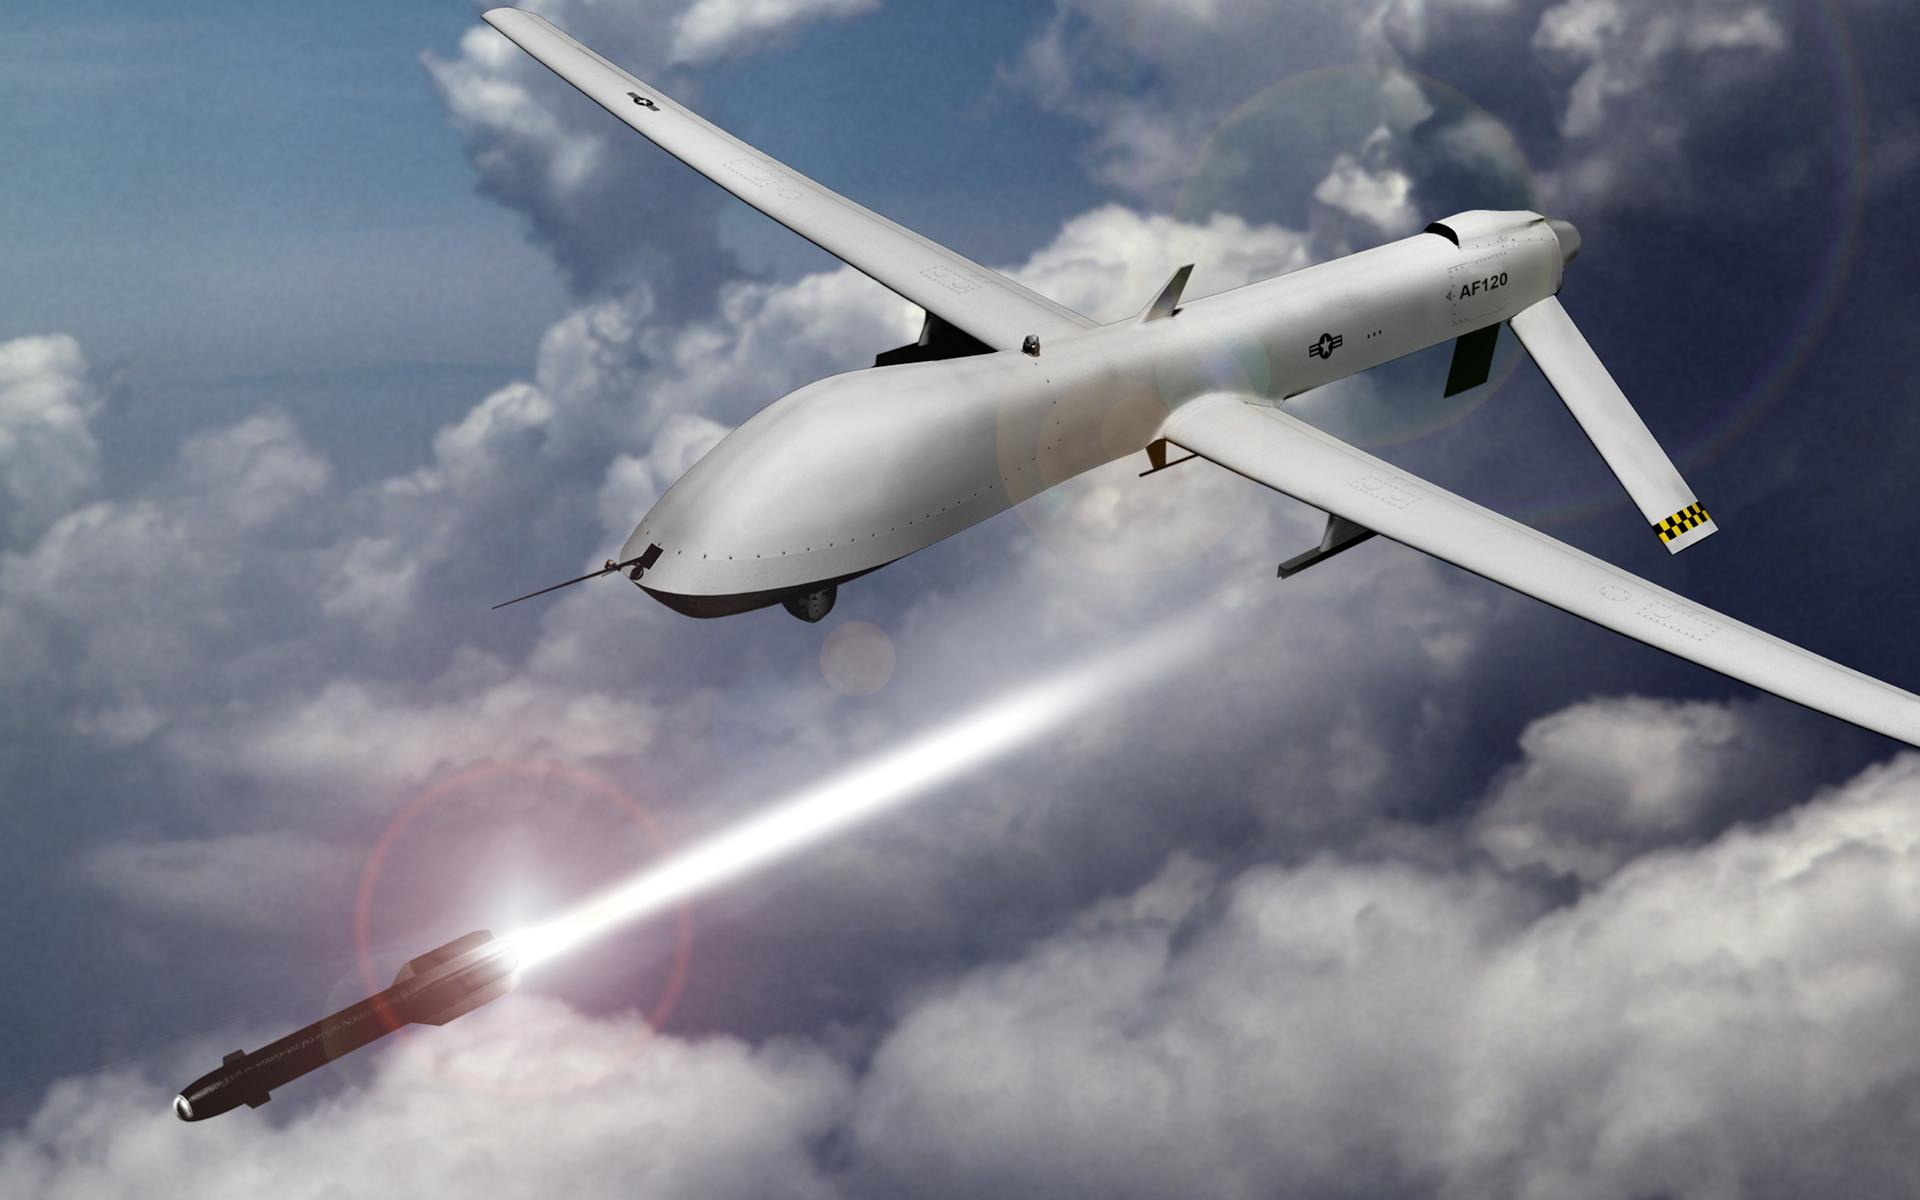 droneattack11